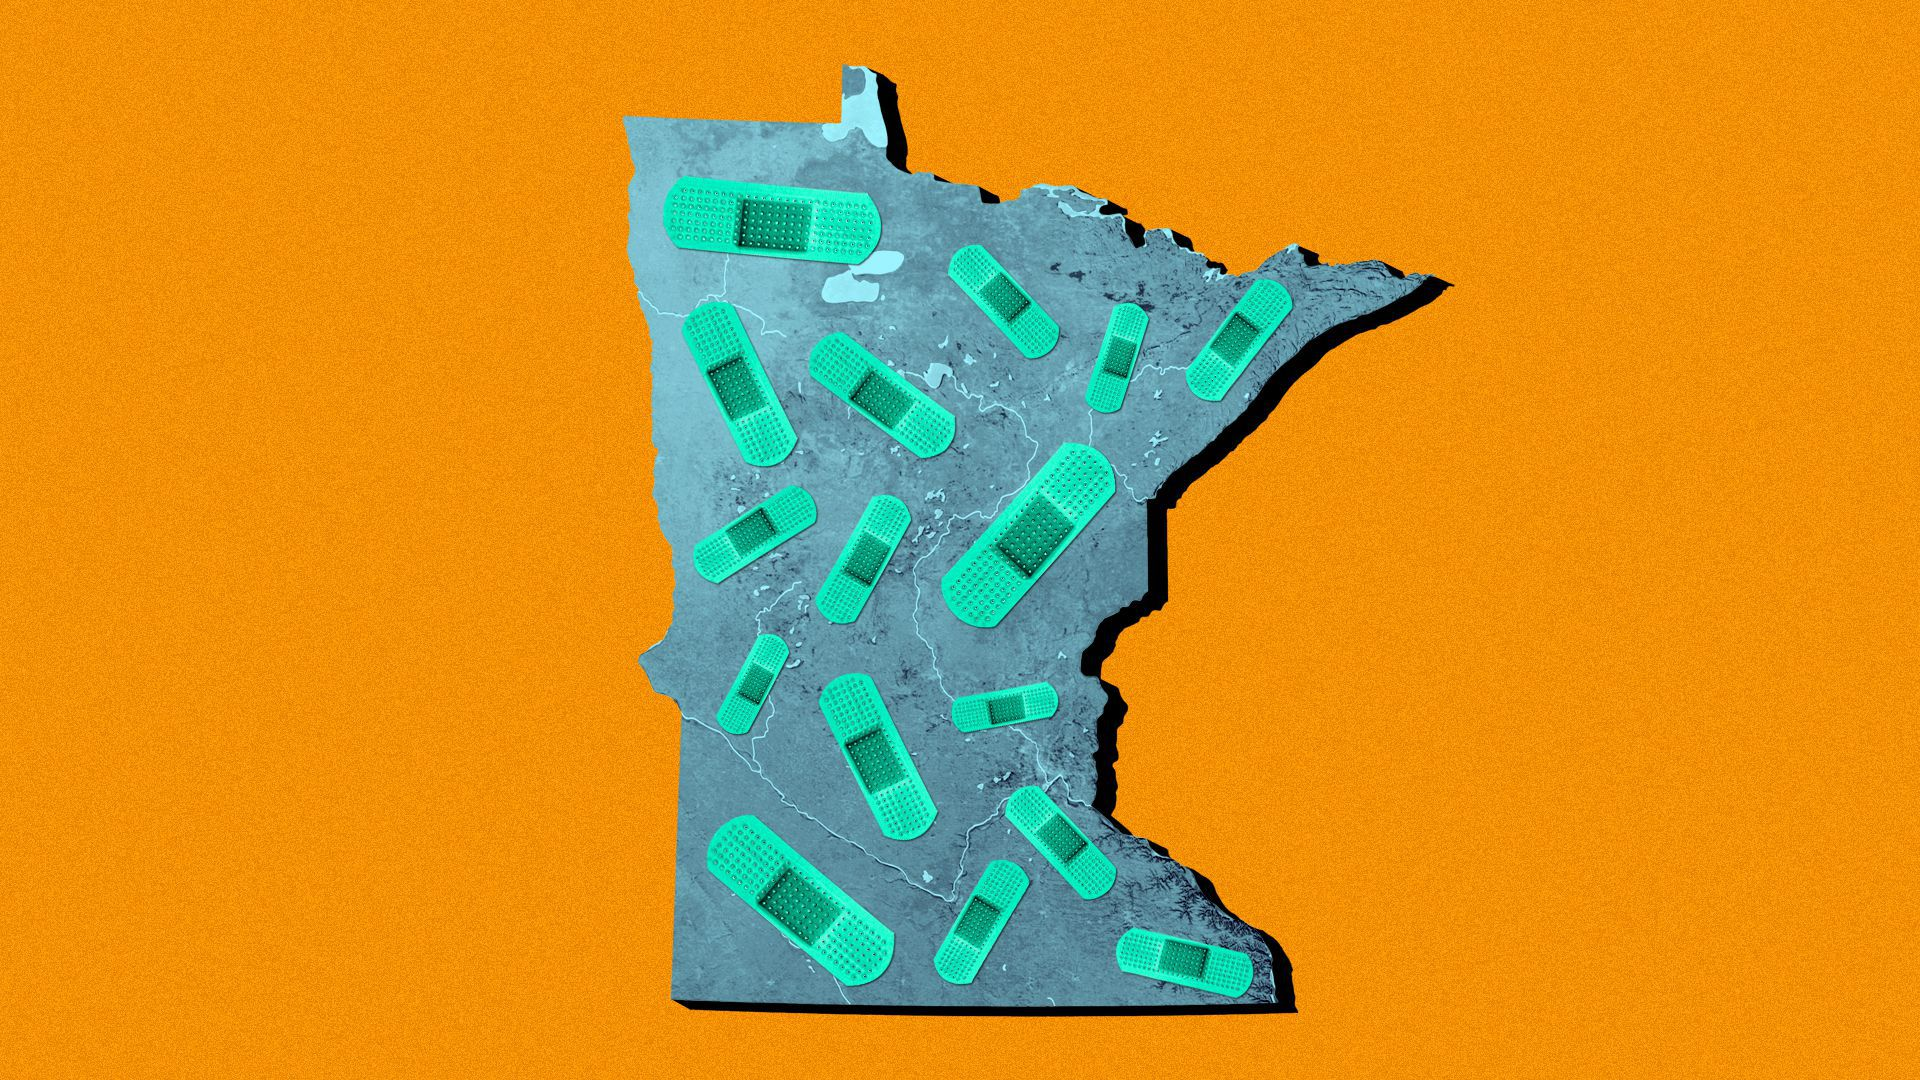 Illustration of the state of Minnesota covered in bandages.